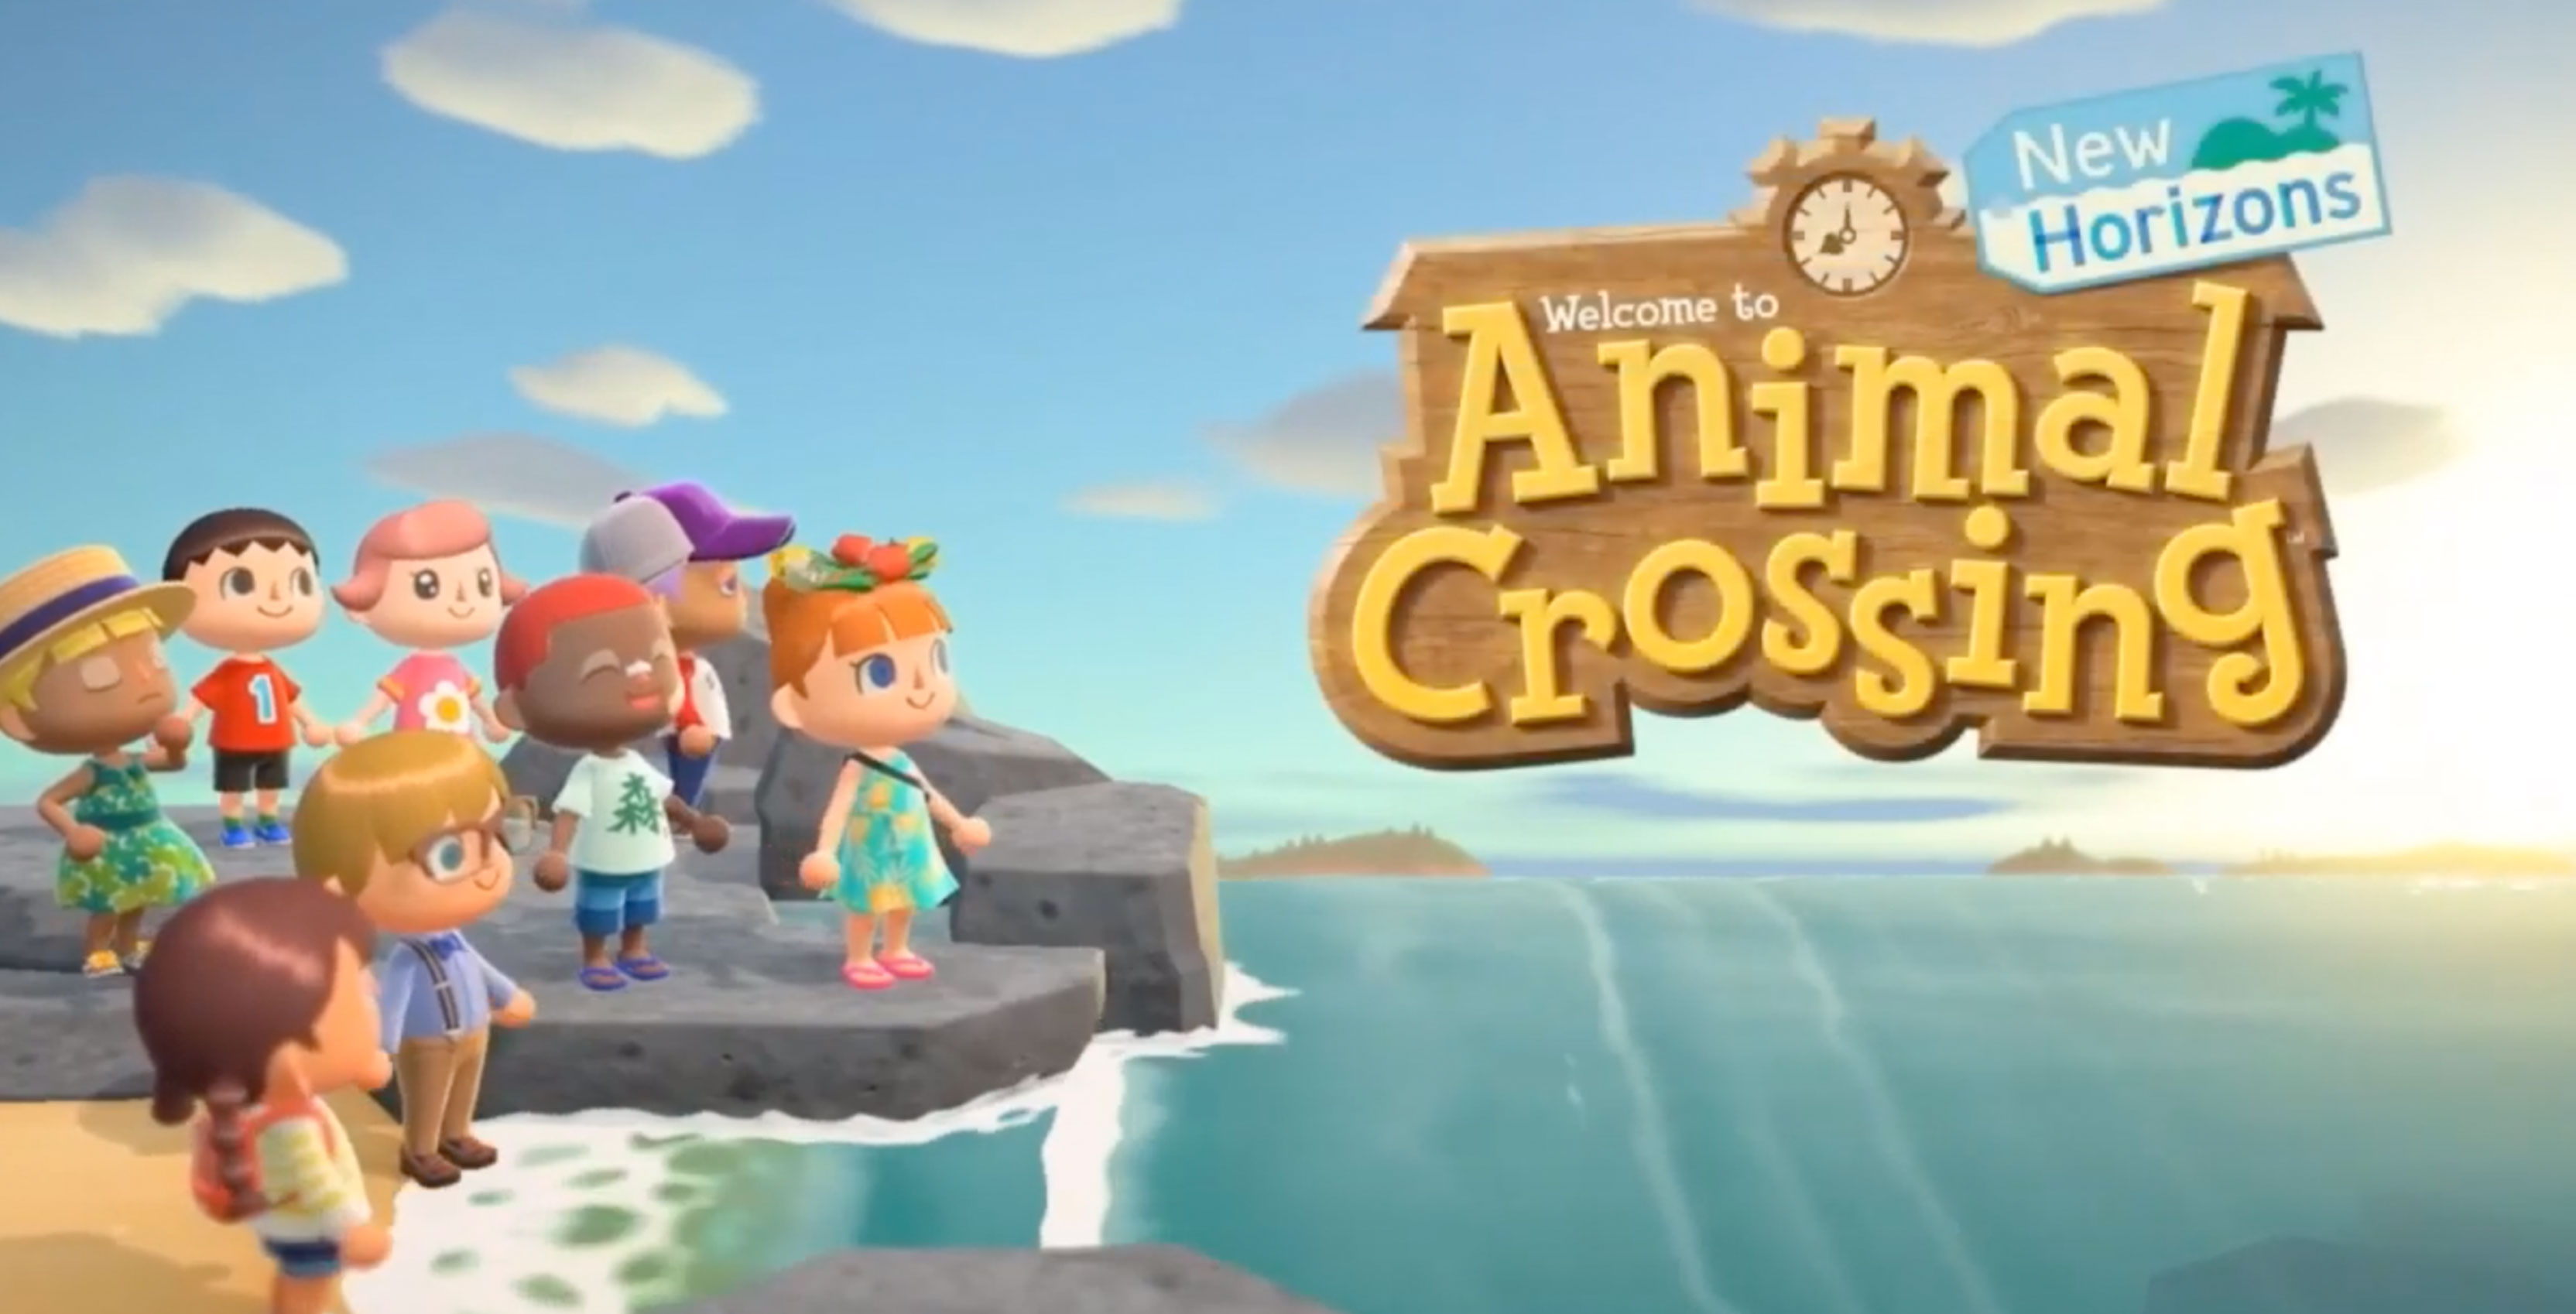 Animal Crossing For The Nintendo Switch Delayed To March 2020